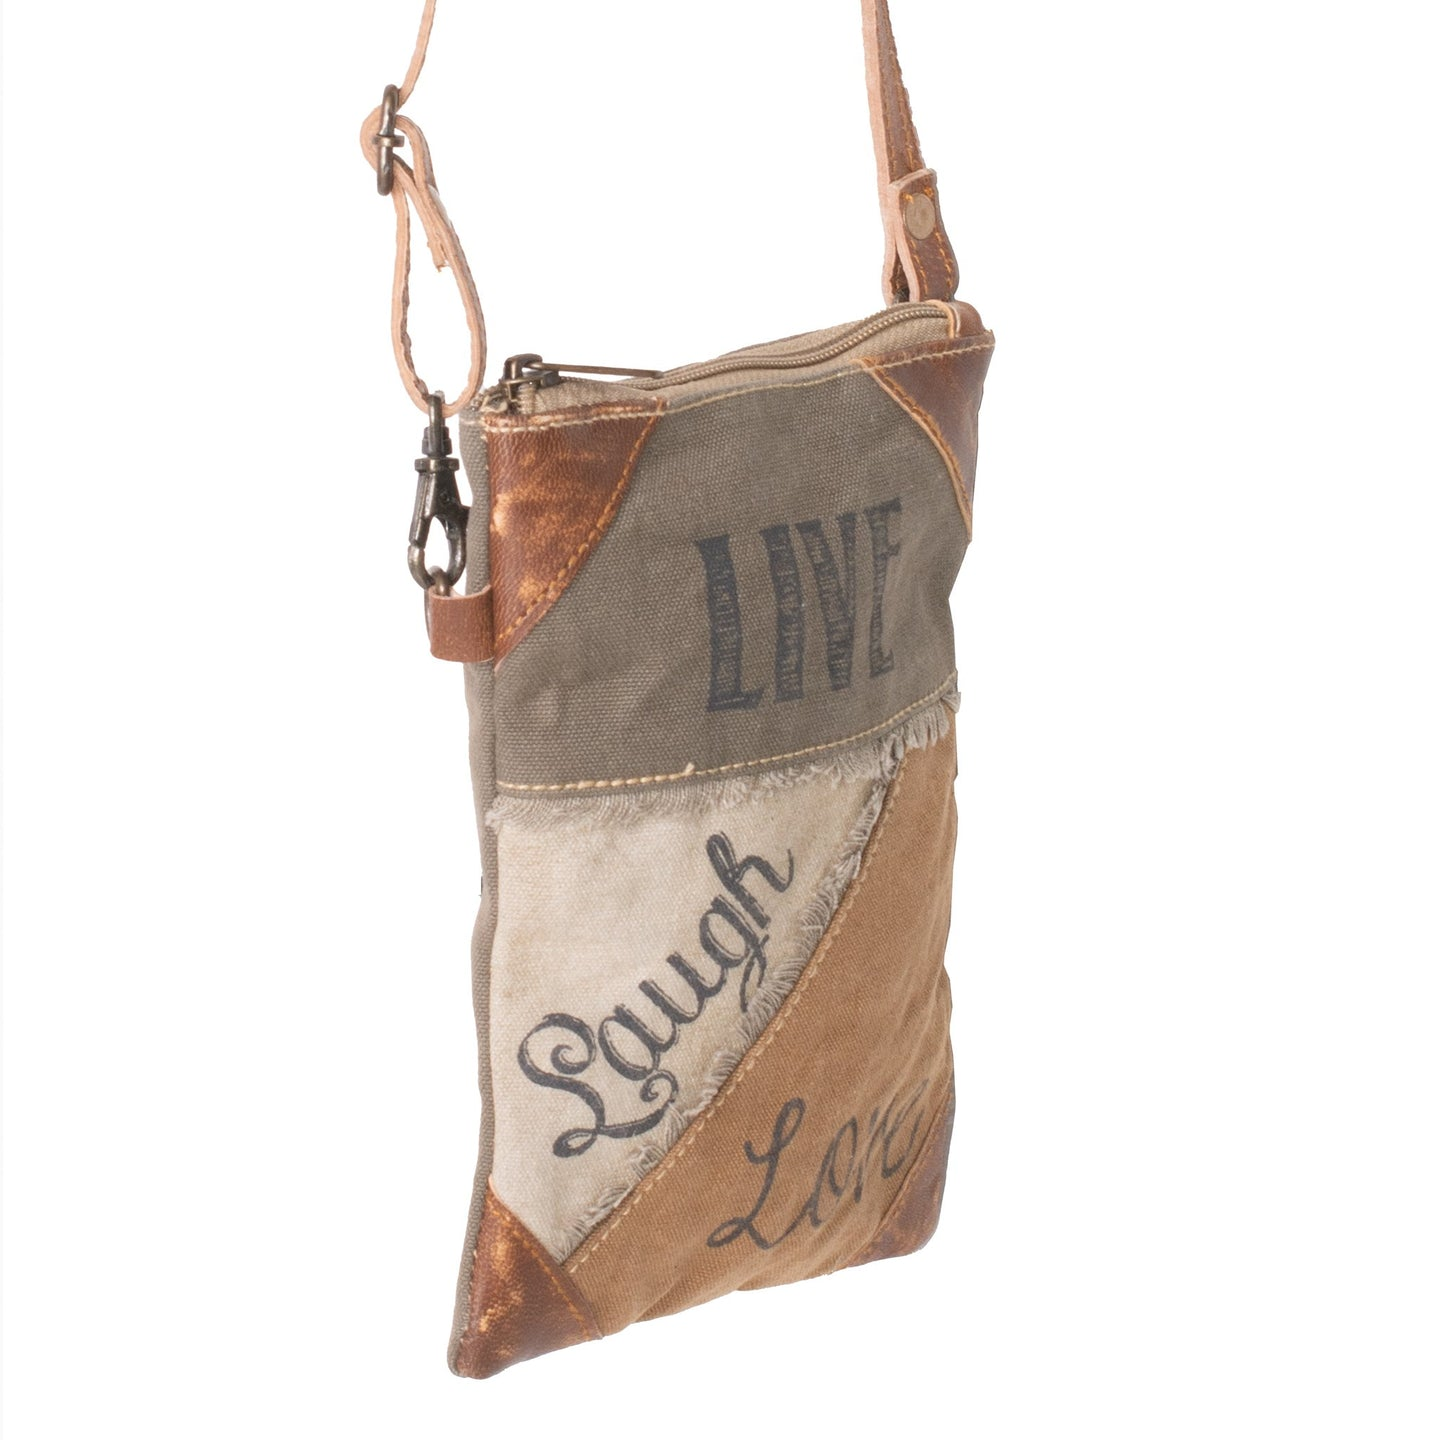 'Live, Laugh, Love' Upcycled Canvas Compact Cross Body Bag